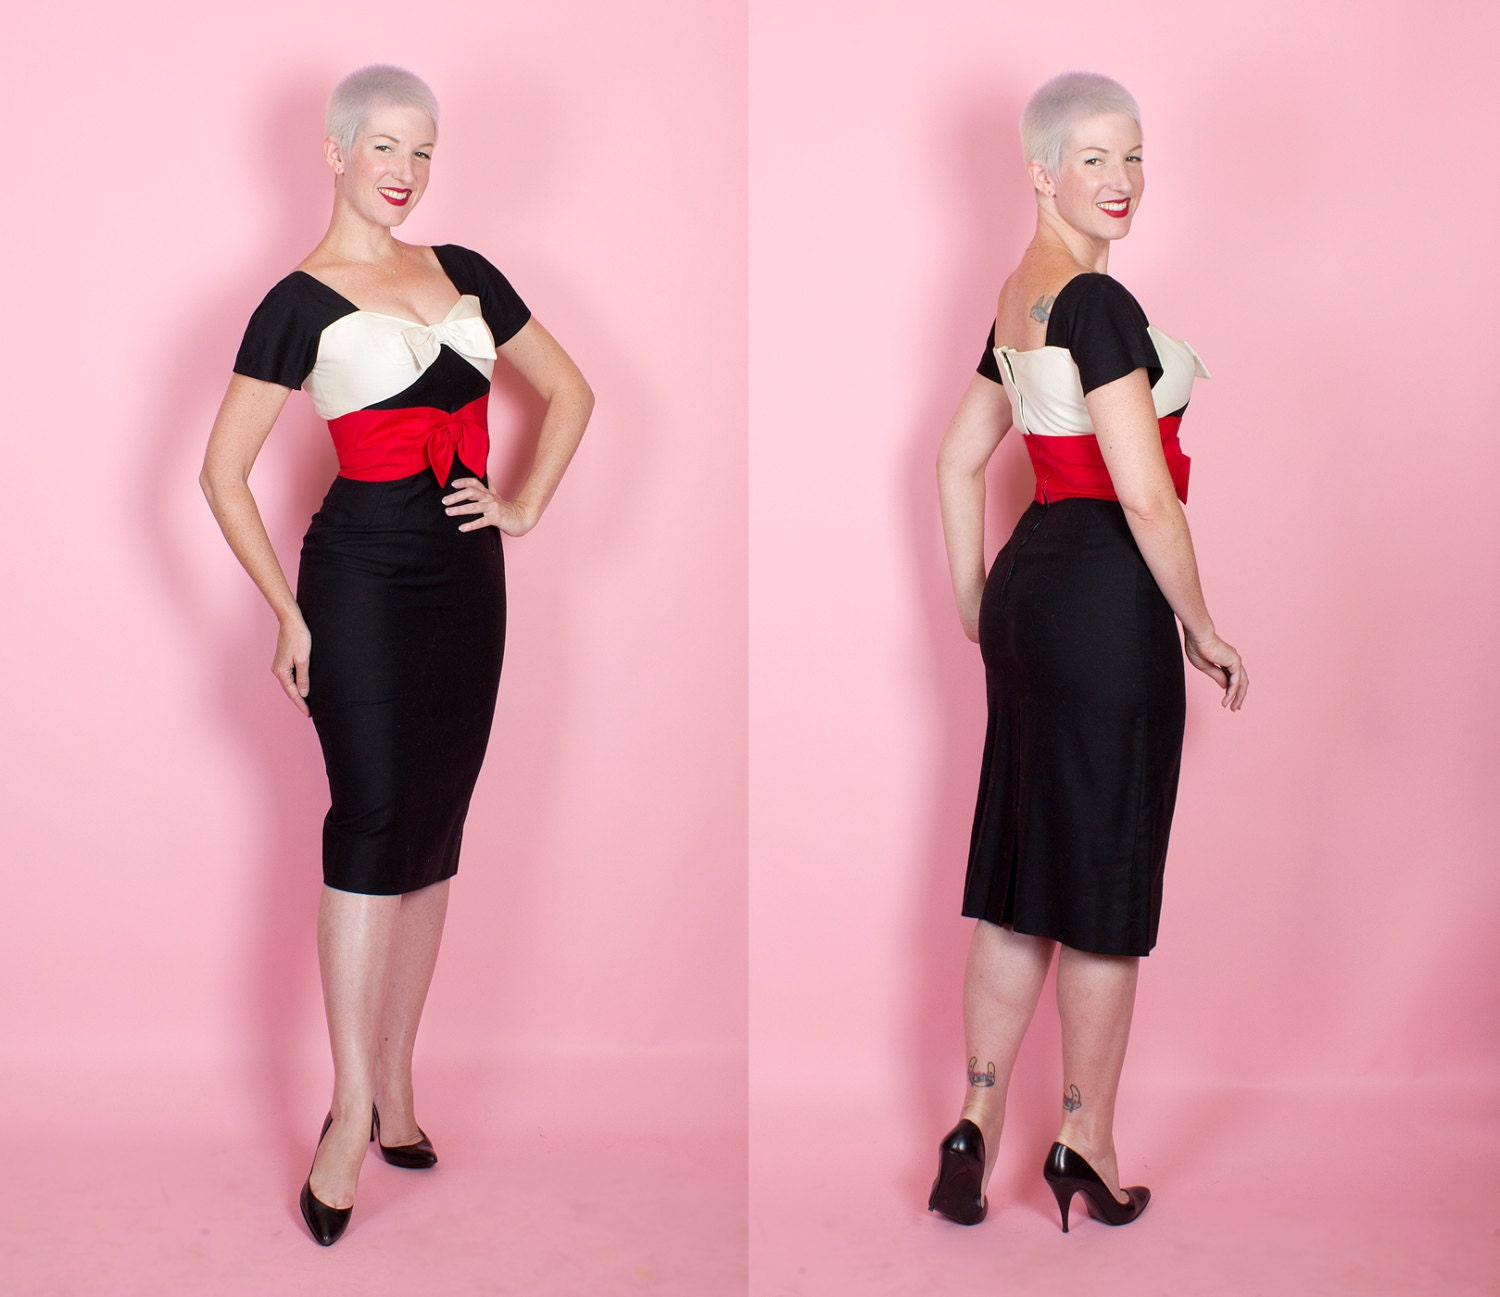 SO CHIC 1950s Designer Inky Black Cotton Pique Hourglass Cocktail Dress w/ White & Red 3D Bow Shelf Bust by Don Loper - Wiggle - Mad Men - M